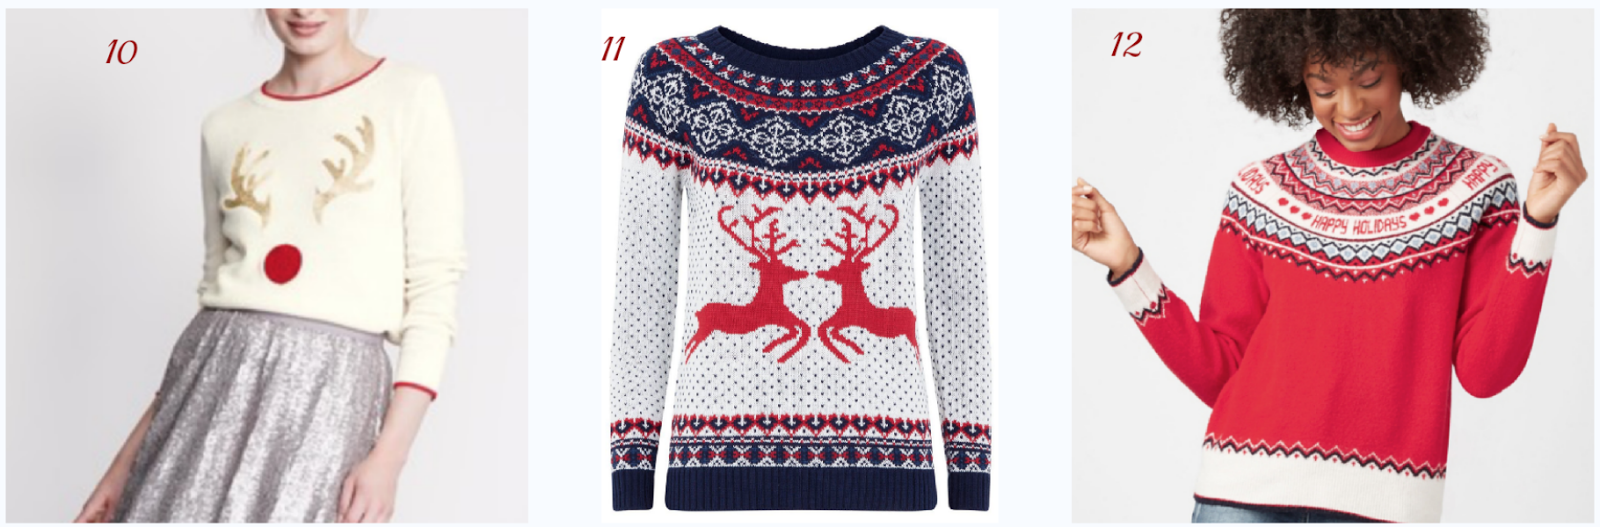 Christmas-jumper-edit-Boden-New-Look-ASDA-knit-wear-festive